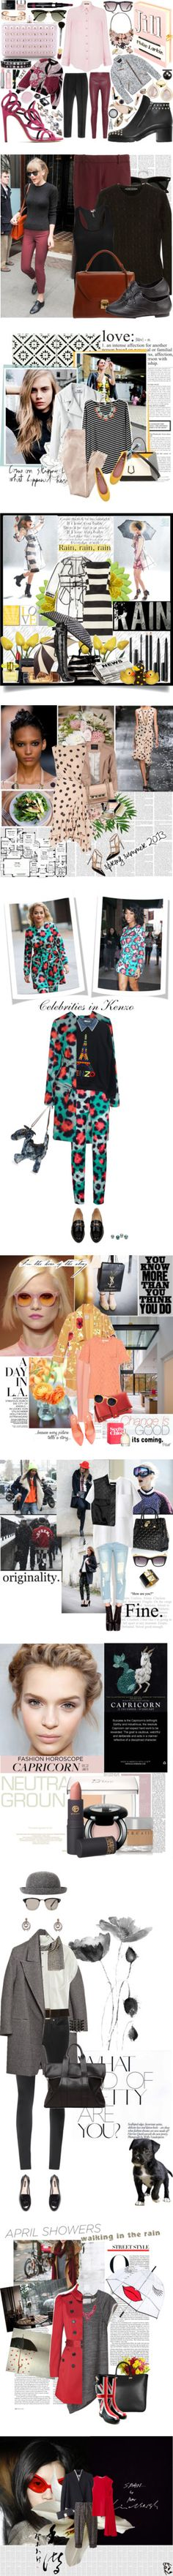 """""""Top Sets for Apr 5th, 2013"""" by polyvore ❤ liked on Polyvore"""